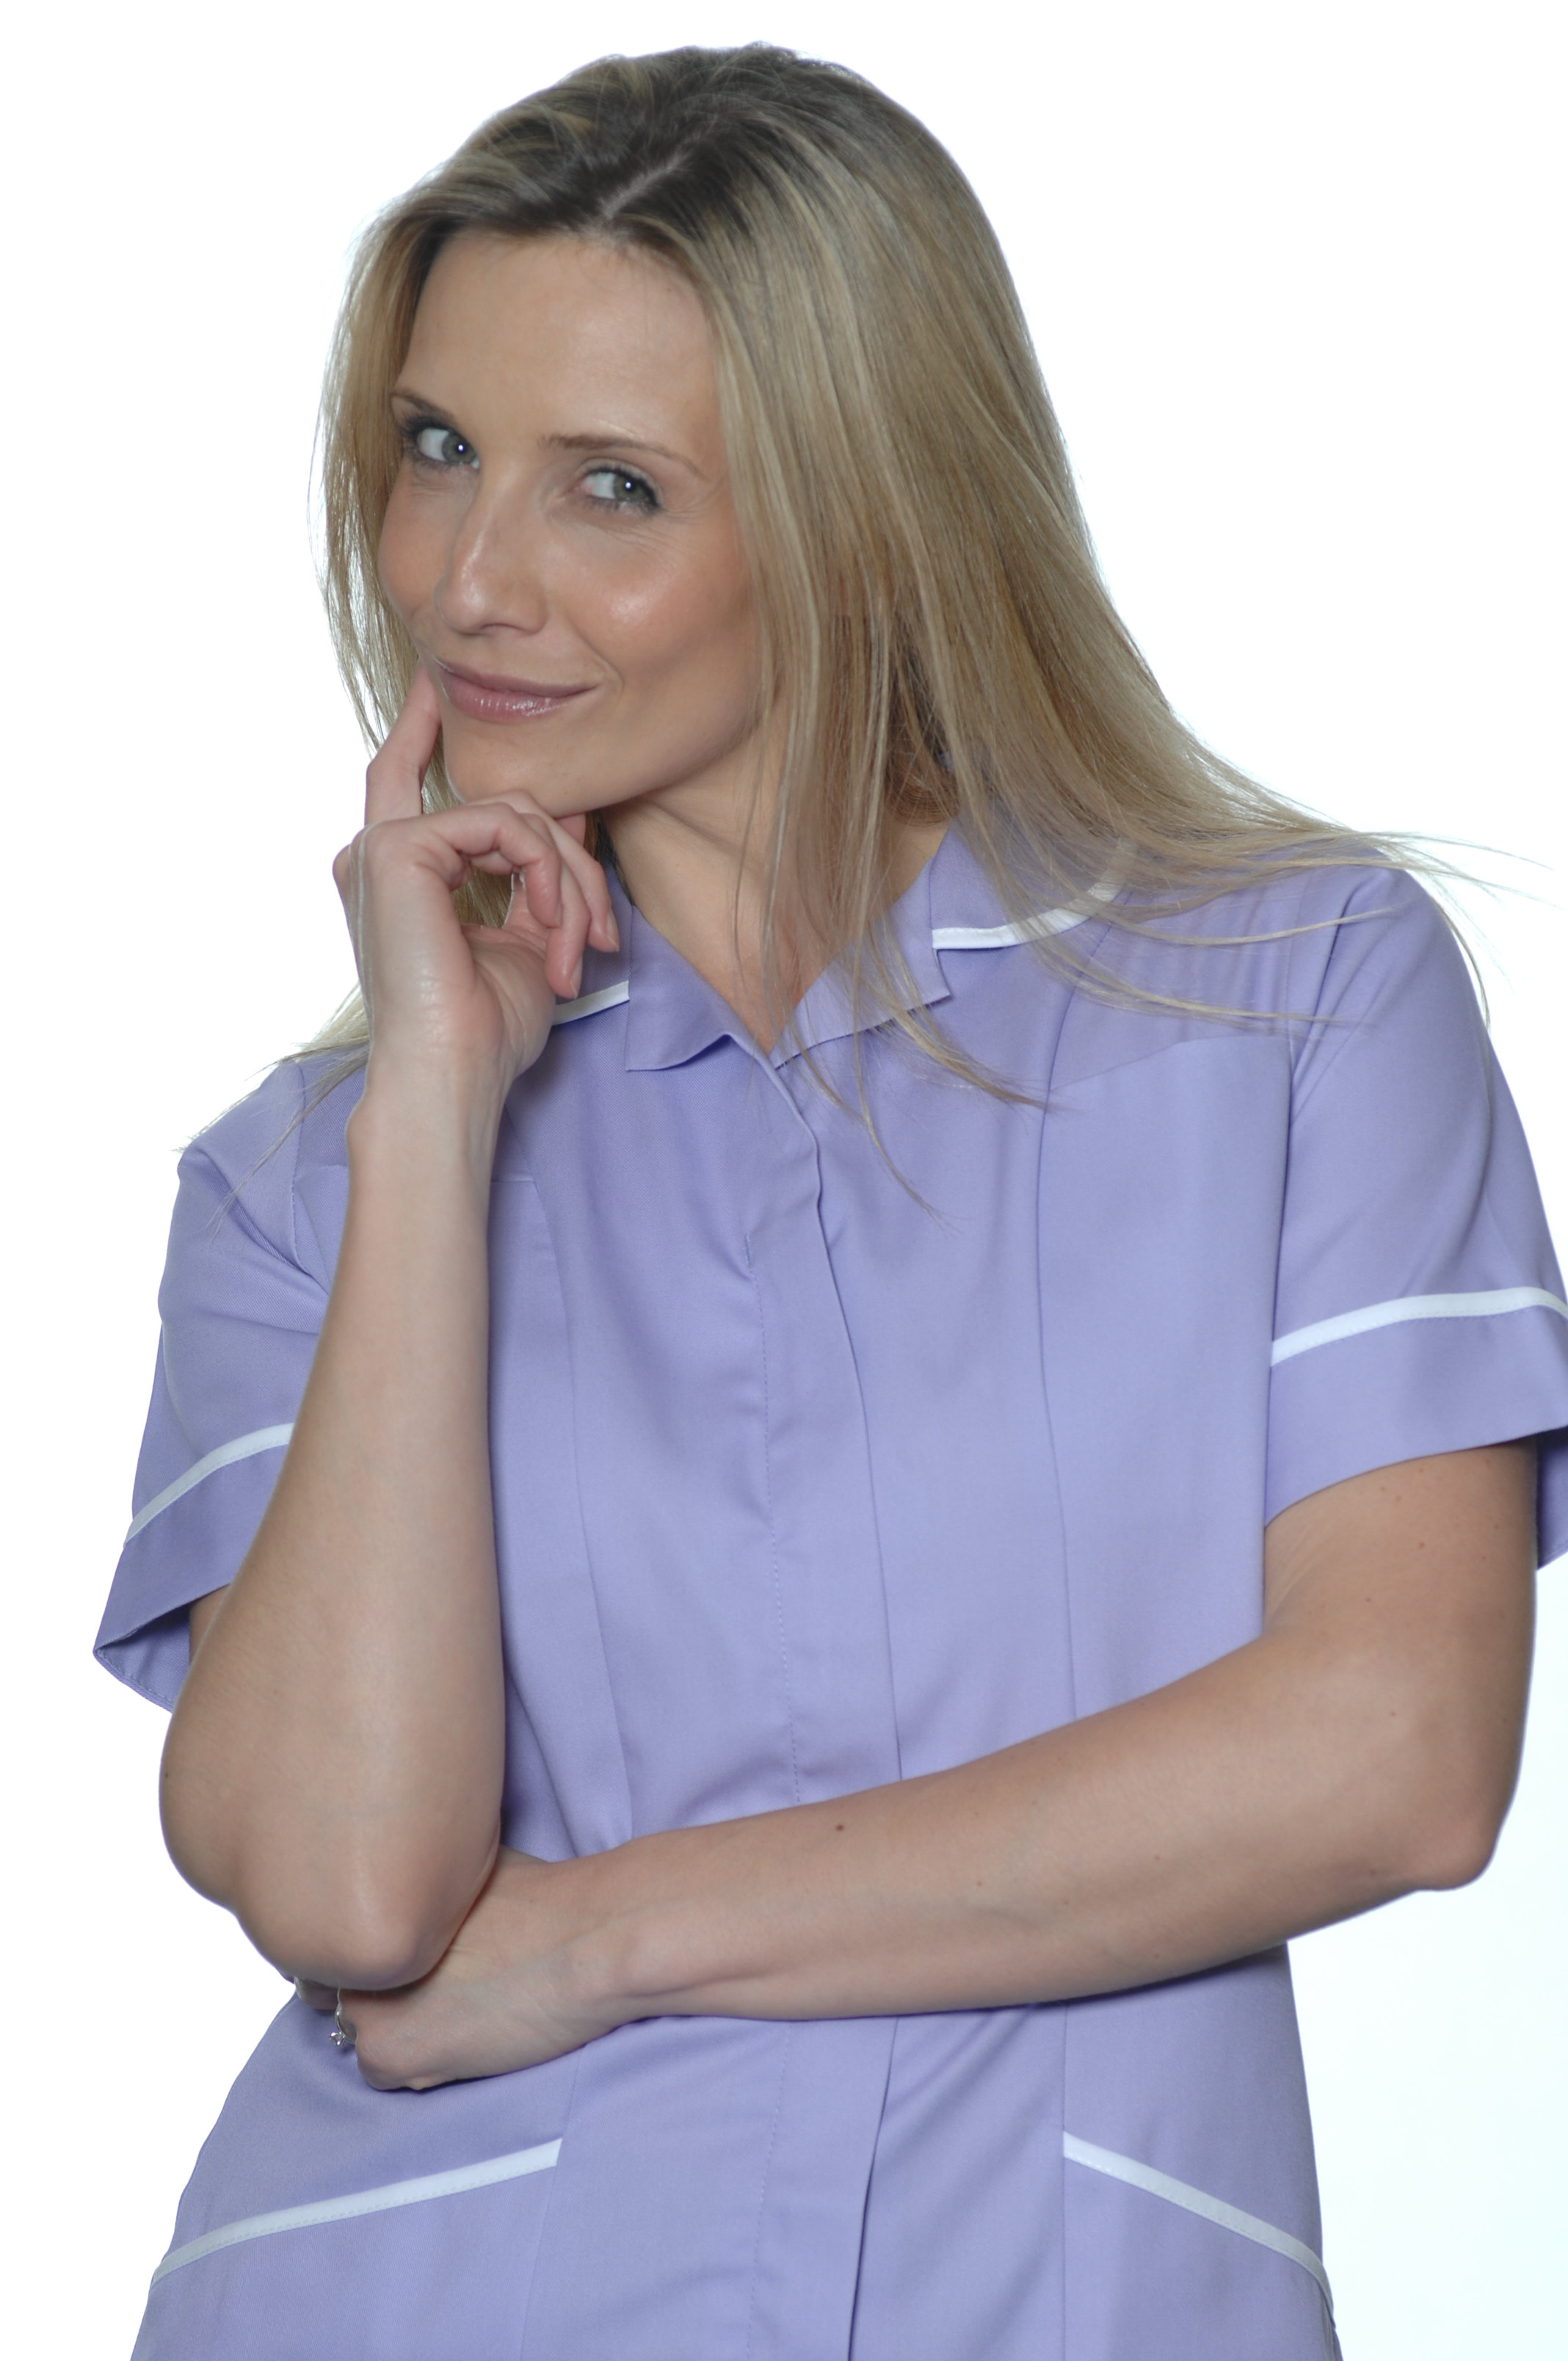 Nurses tunic, healthcare tunic